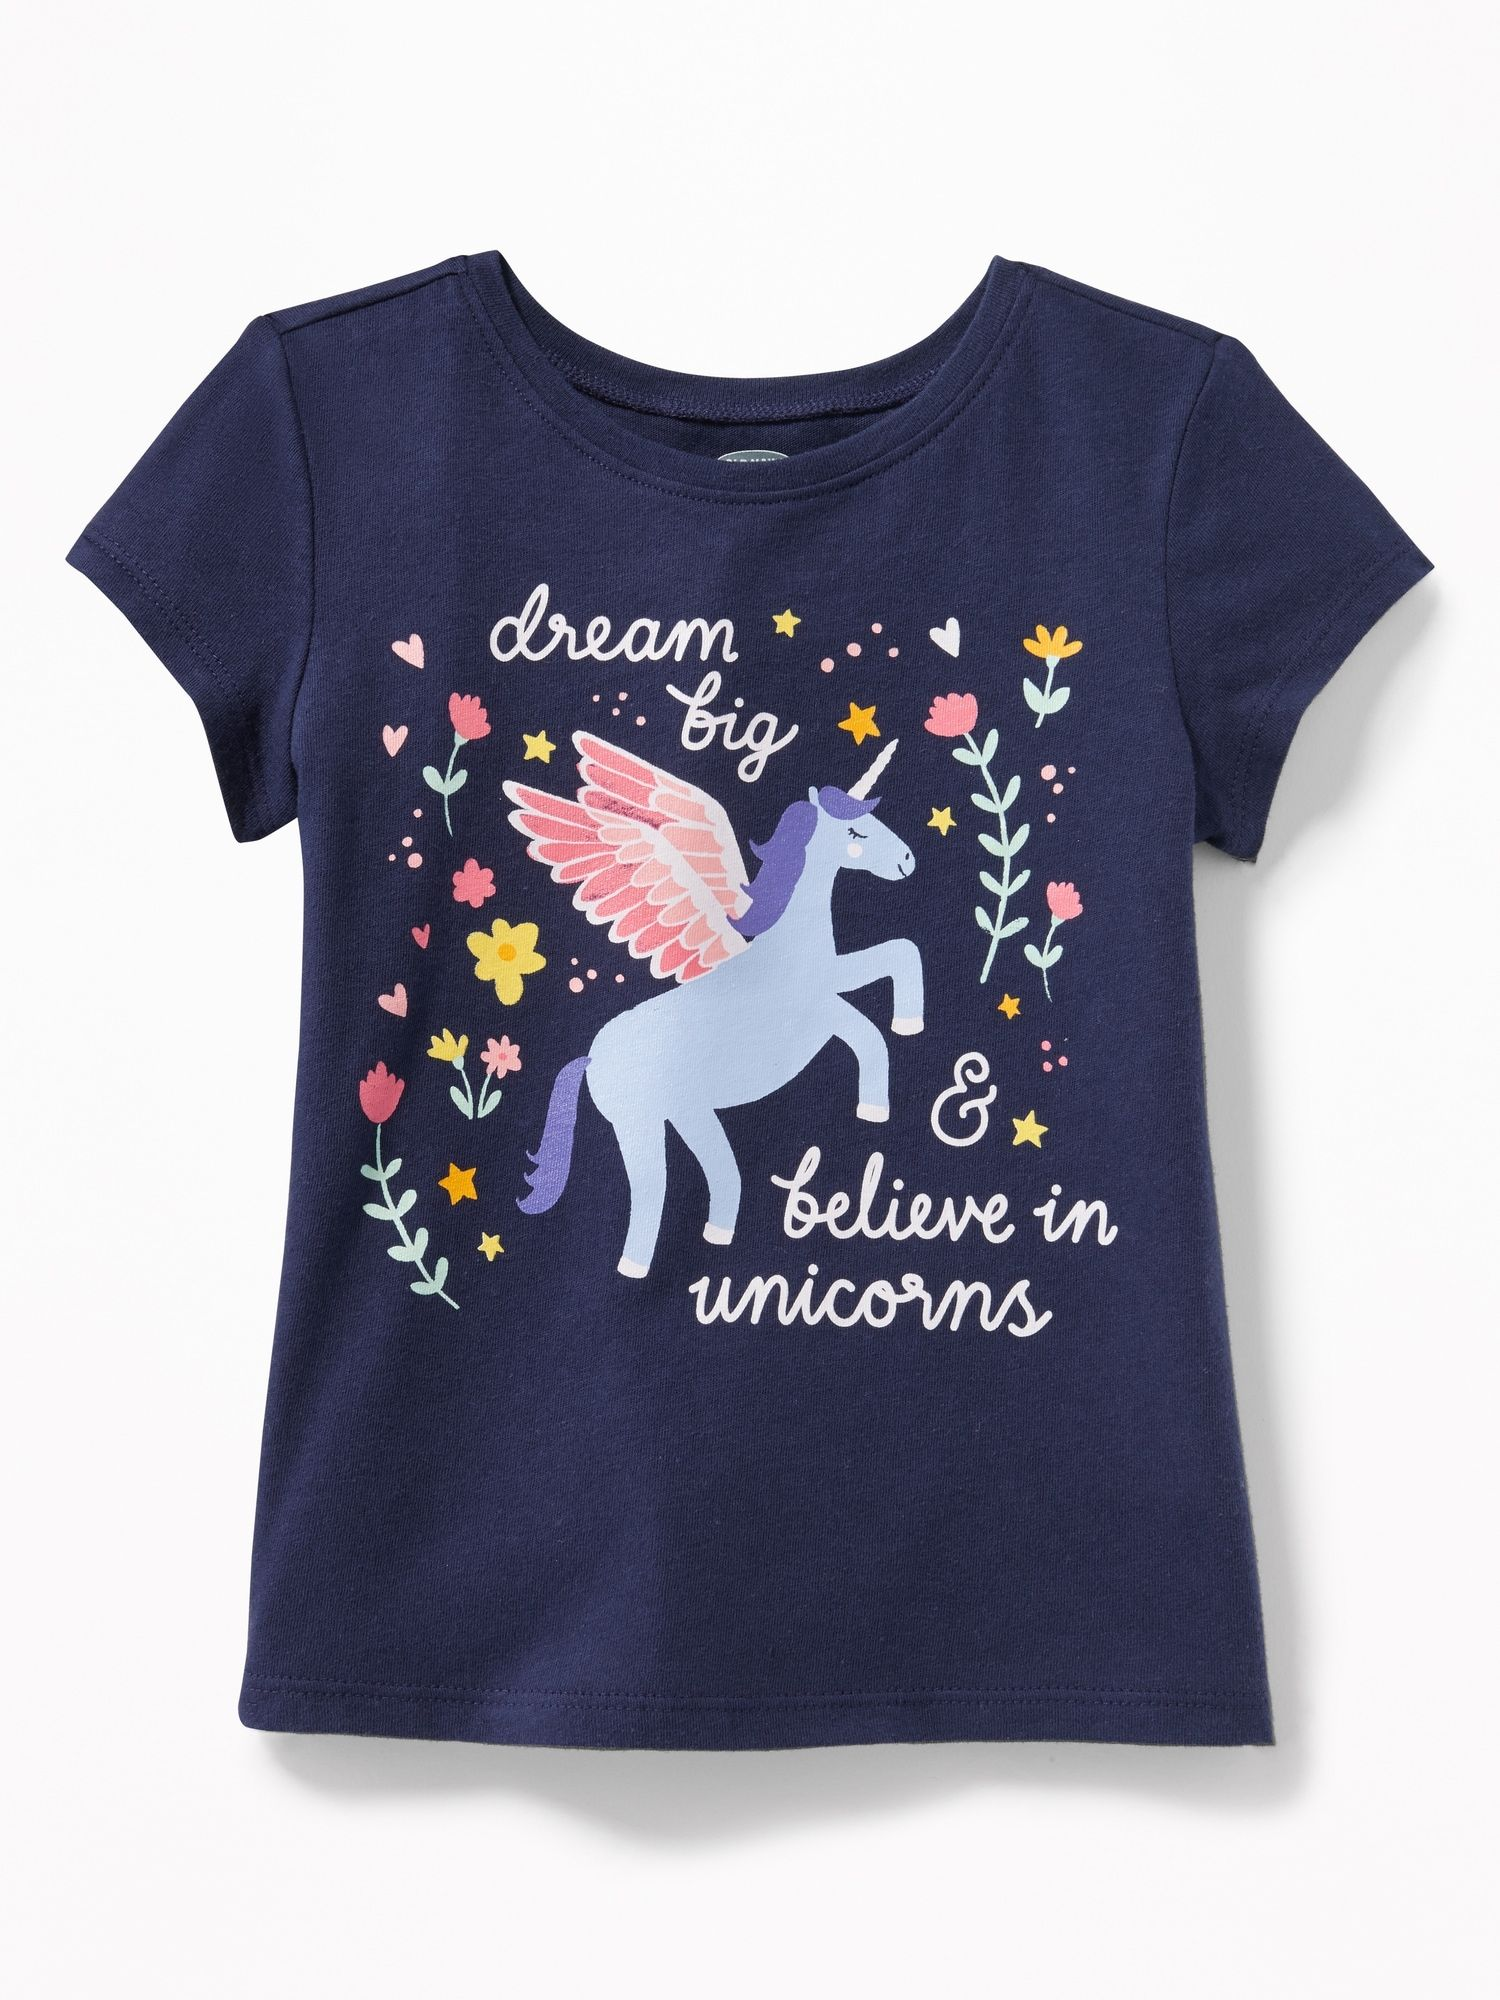 Graphic Tee for Toddler Girls | Emma 2018-2019 | Kids